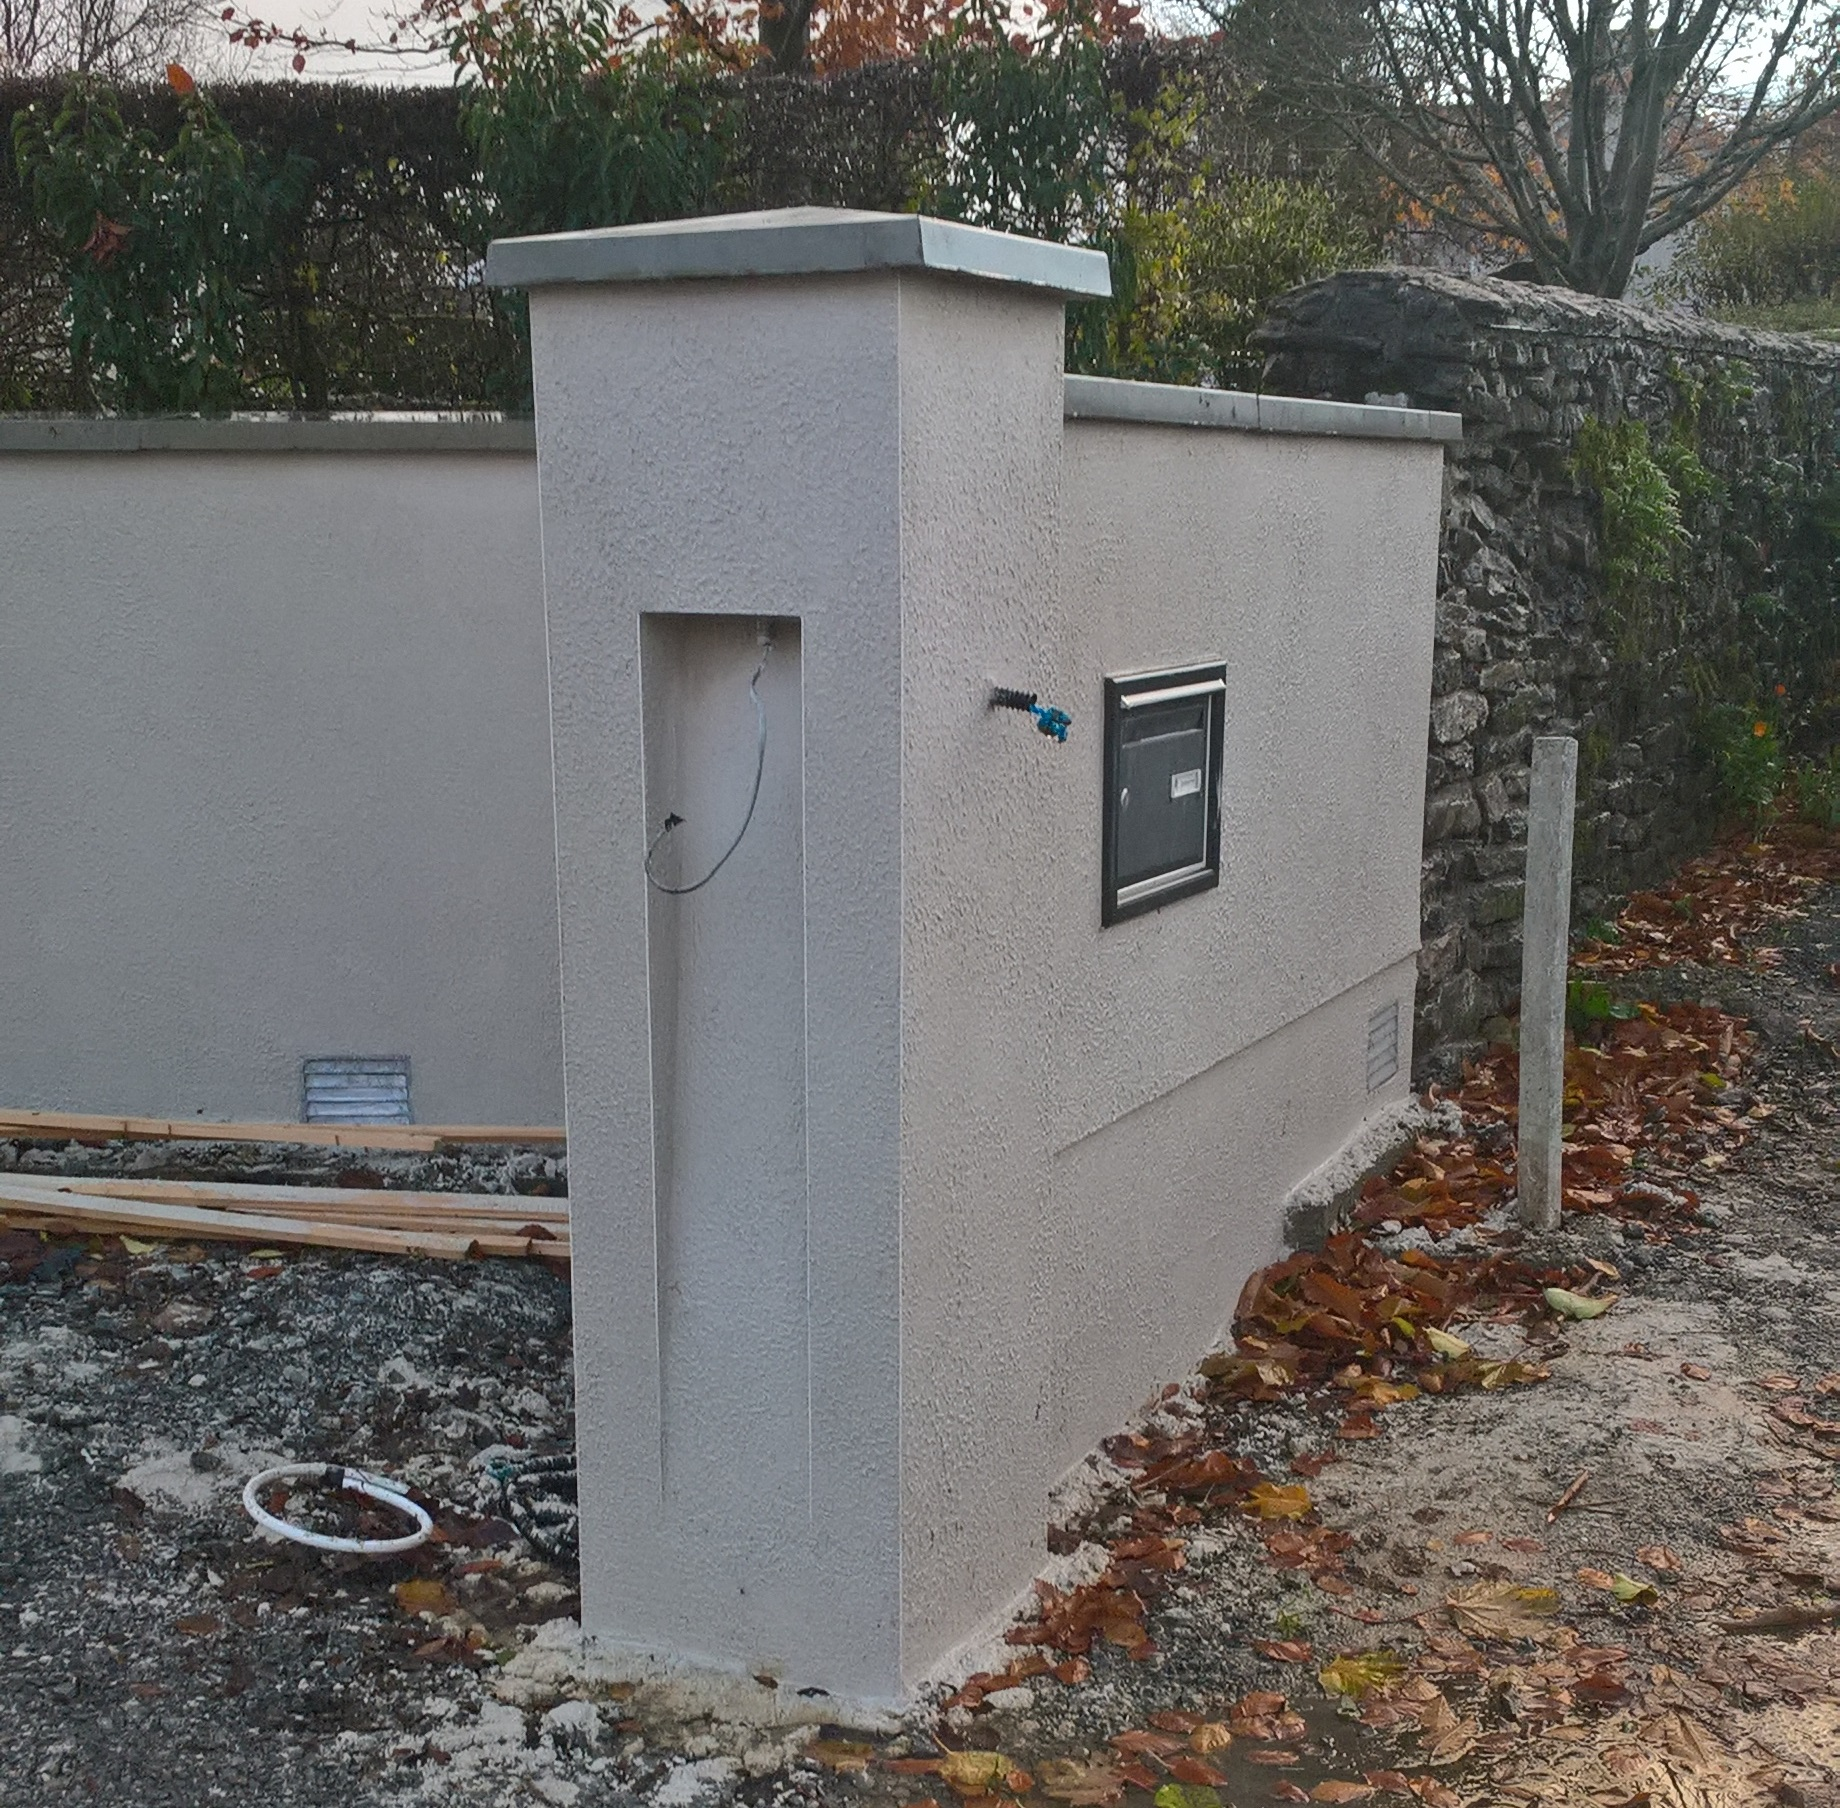 Entrance walls with Nap finish in White Cement